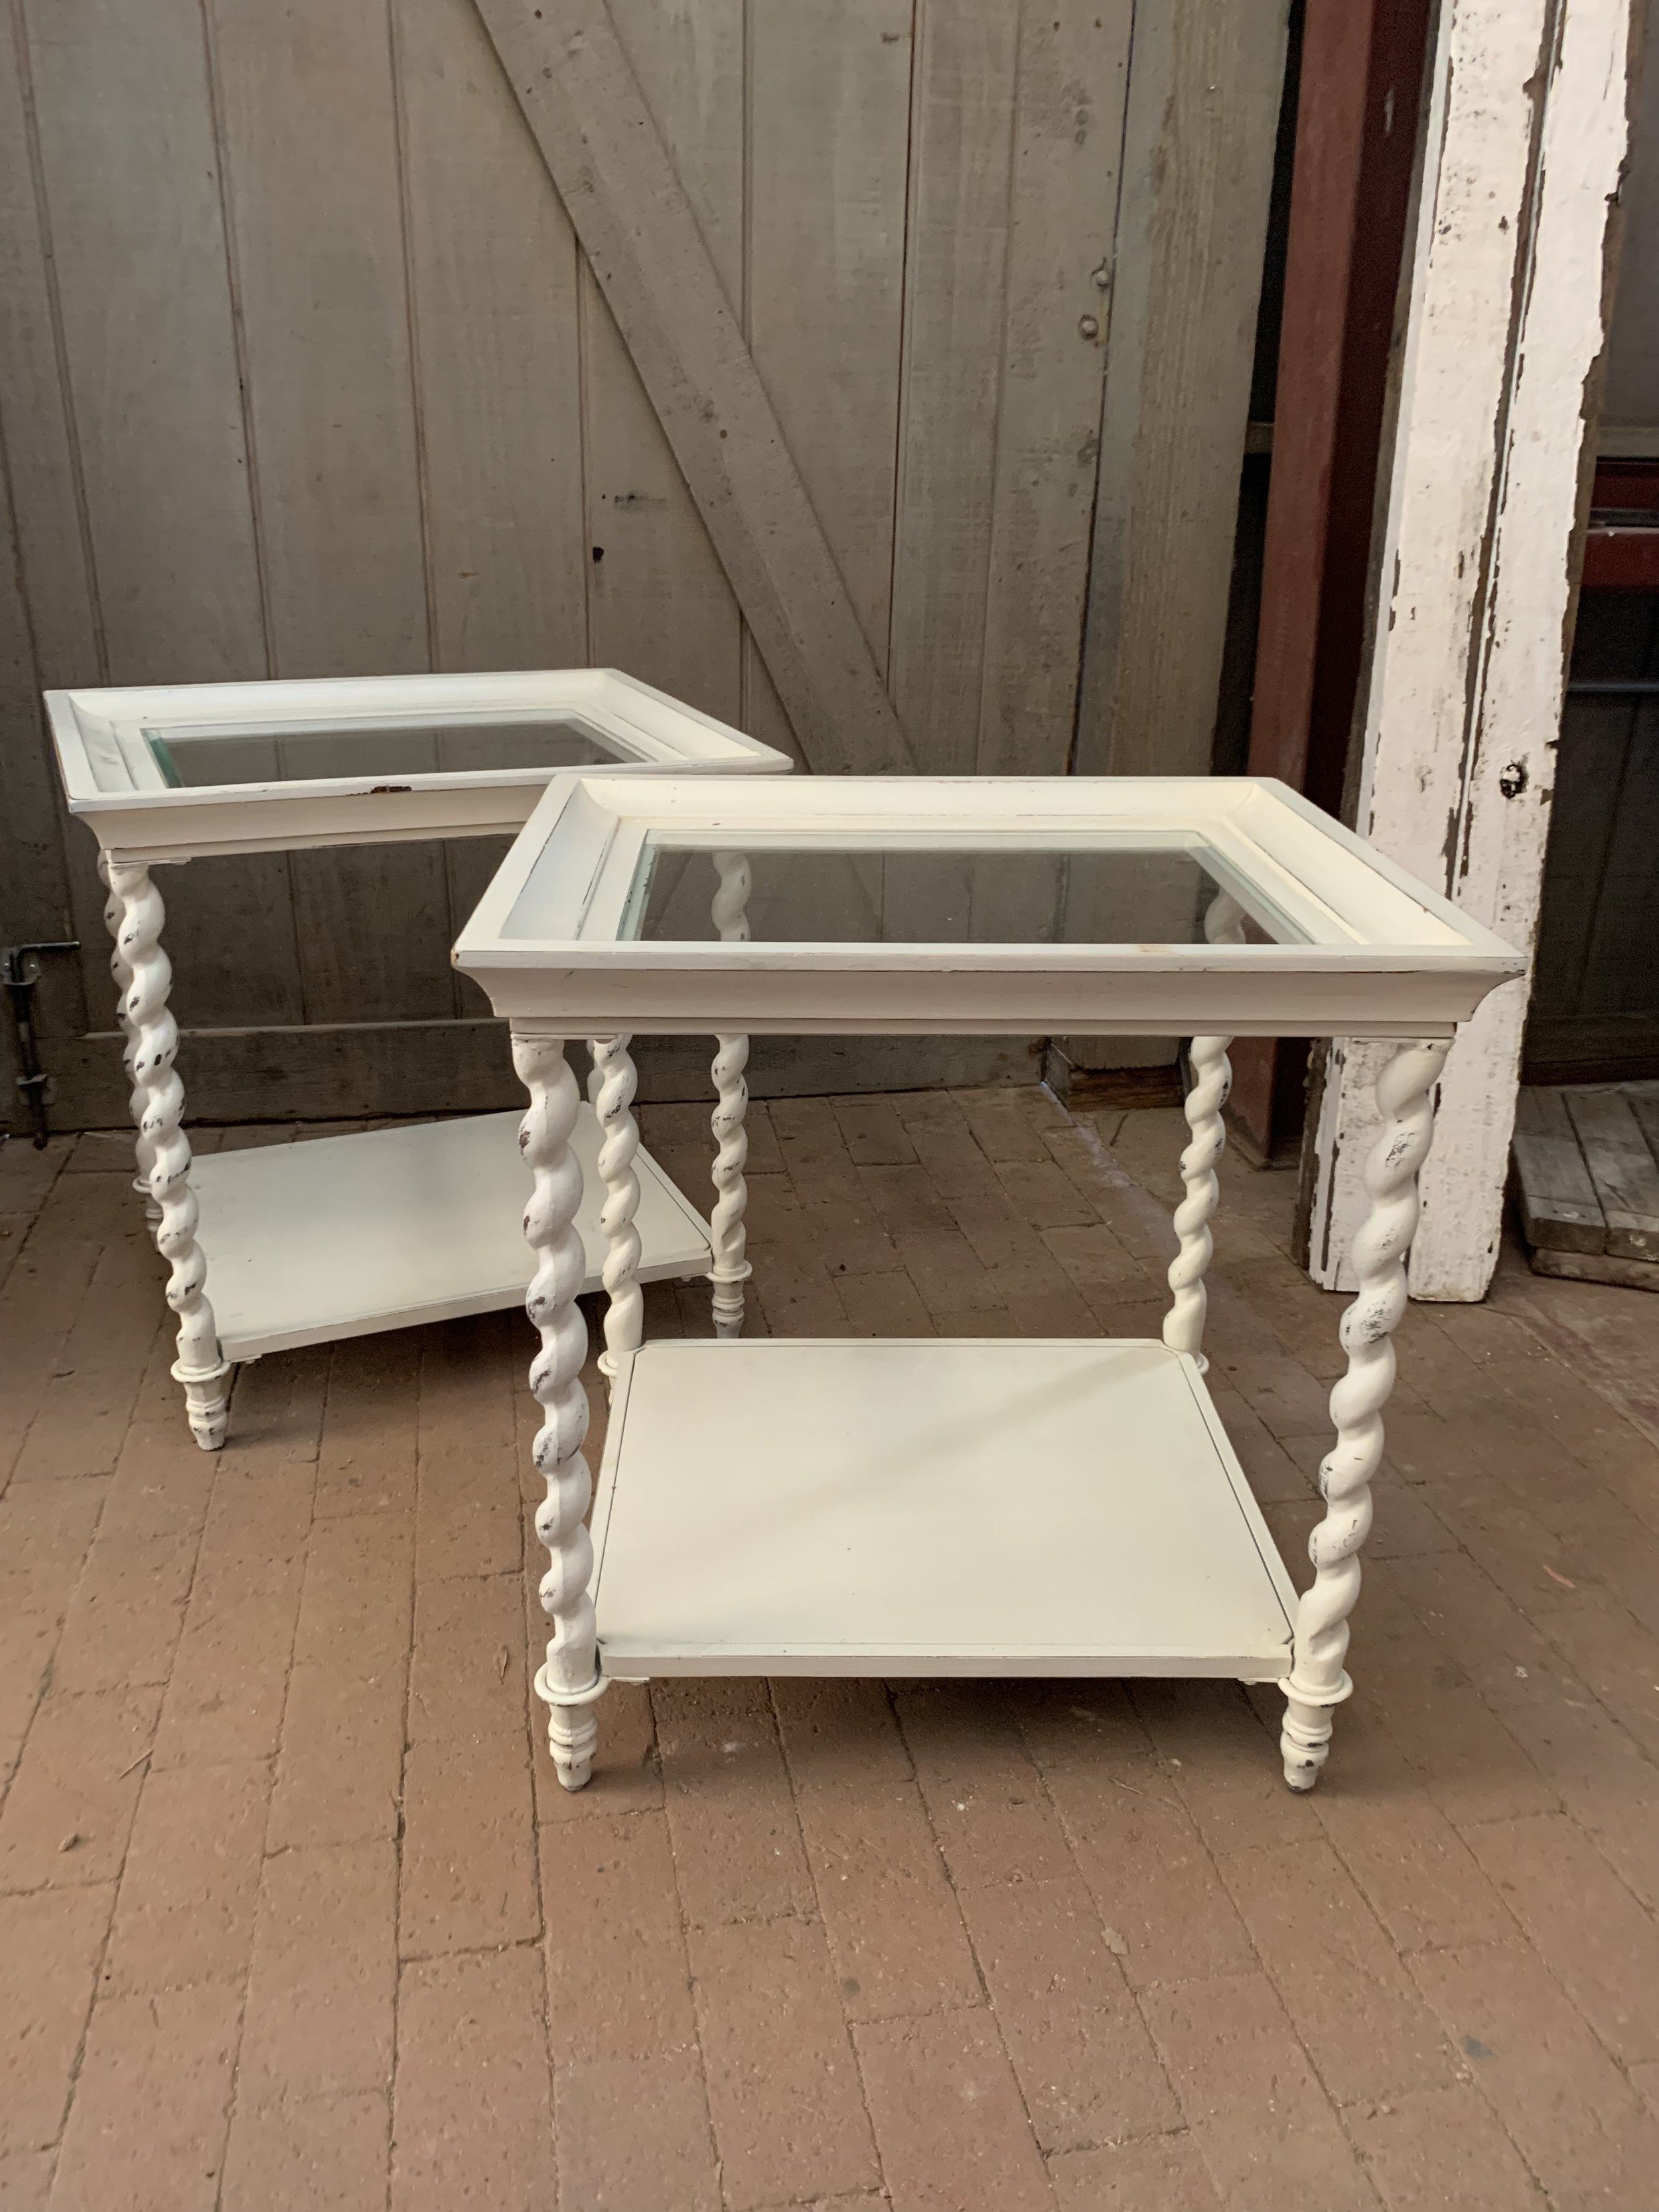 SQUARE WHITE ACCENT TABLES WITH TWISTED LEGS (set of 2) - $65